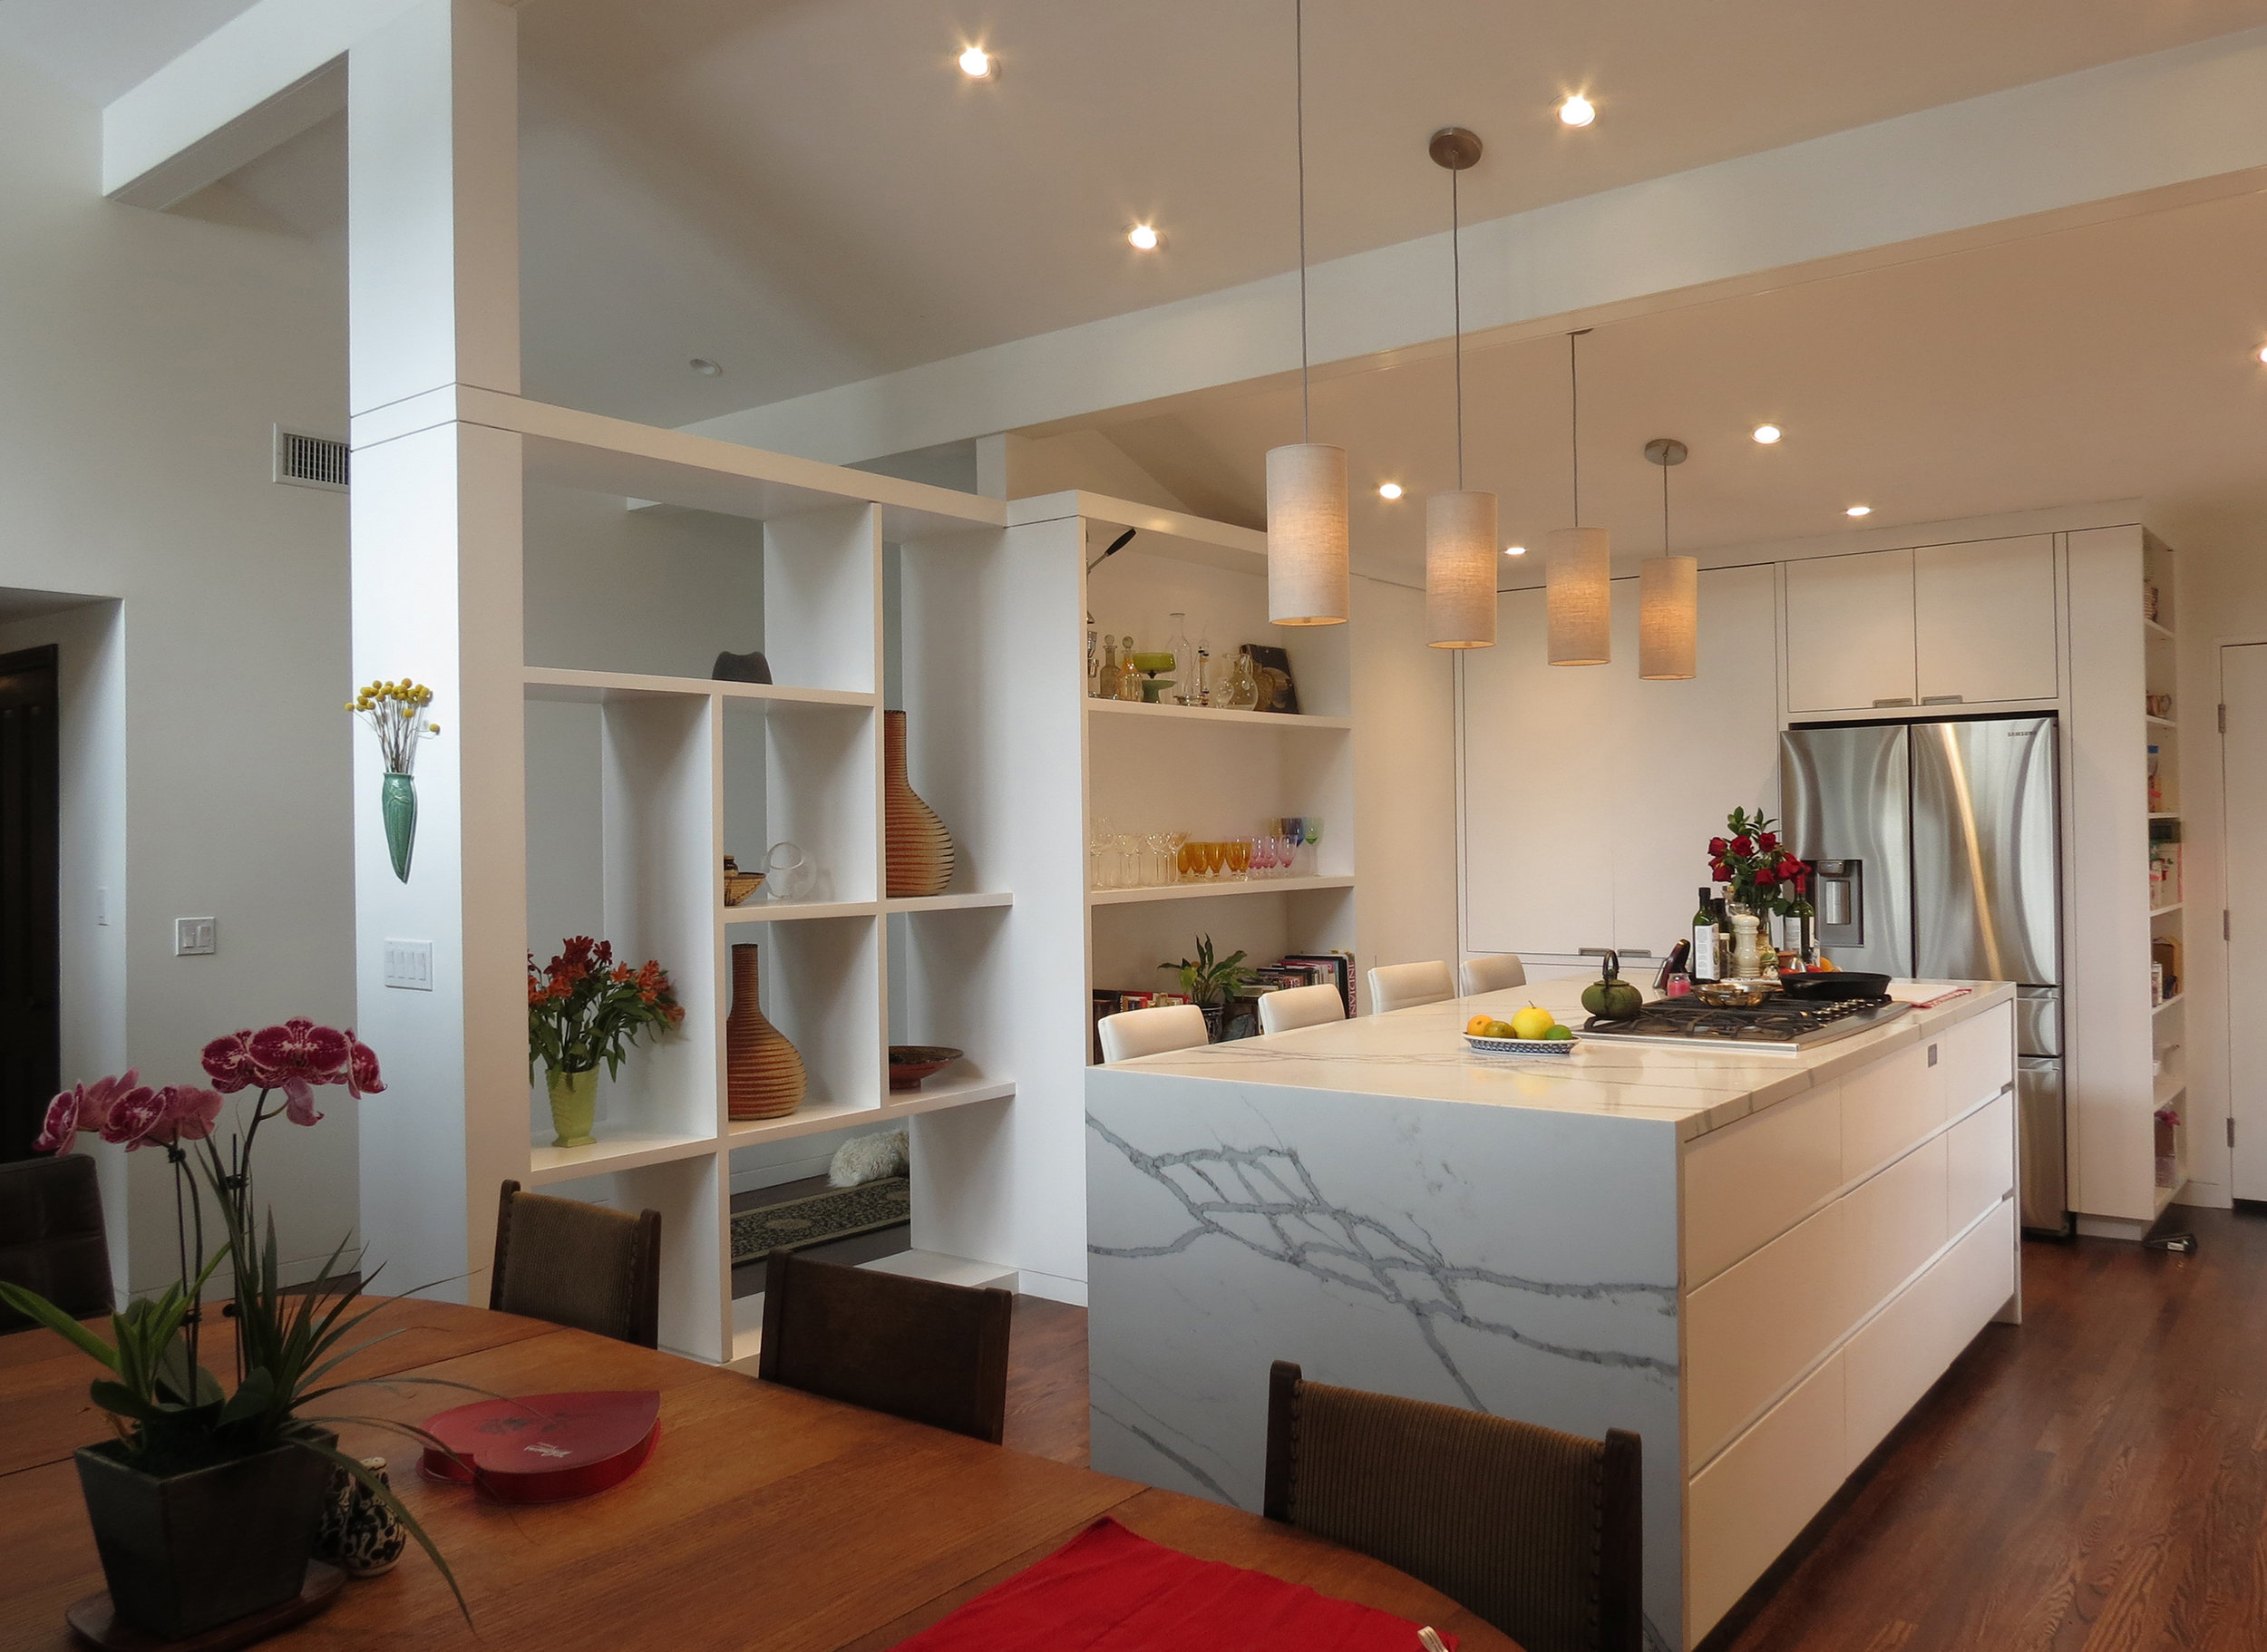 georgearchitecture_younghouse_kitchen02_3000.jpg